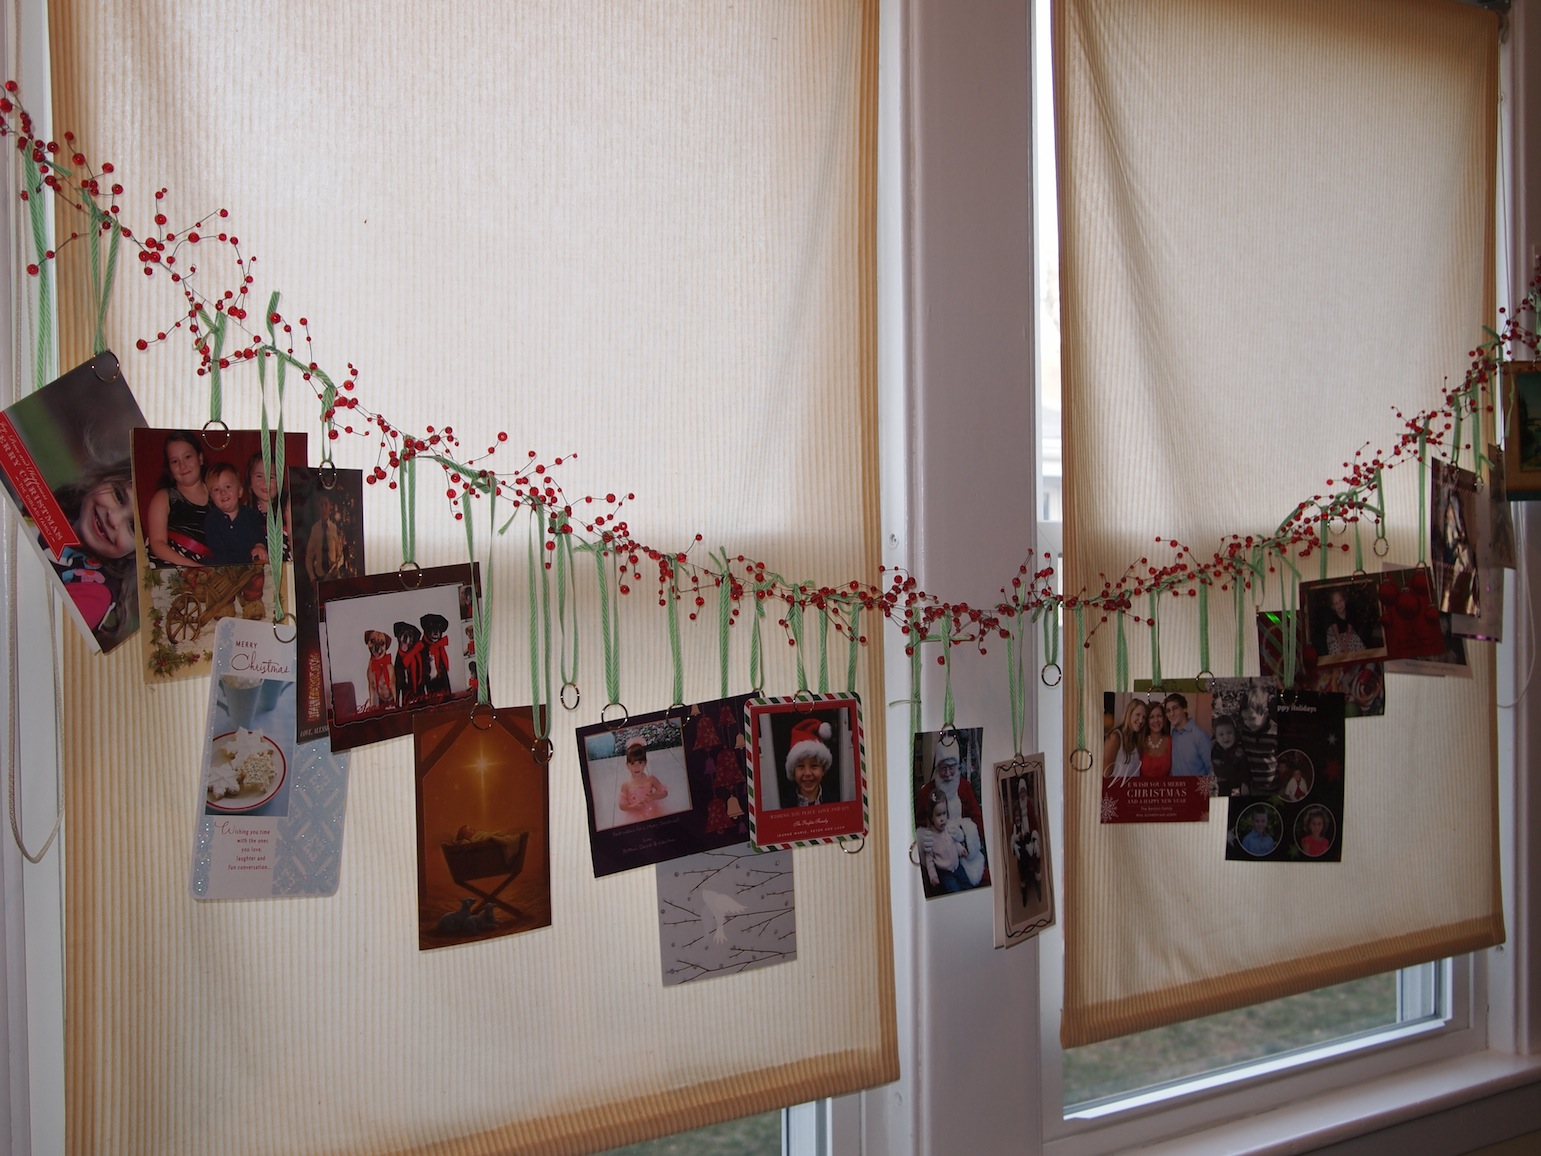 How To Display Christmas Cards - House Beautiful - House Beautiful